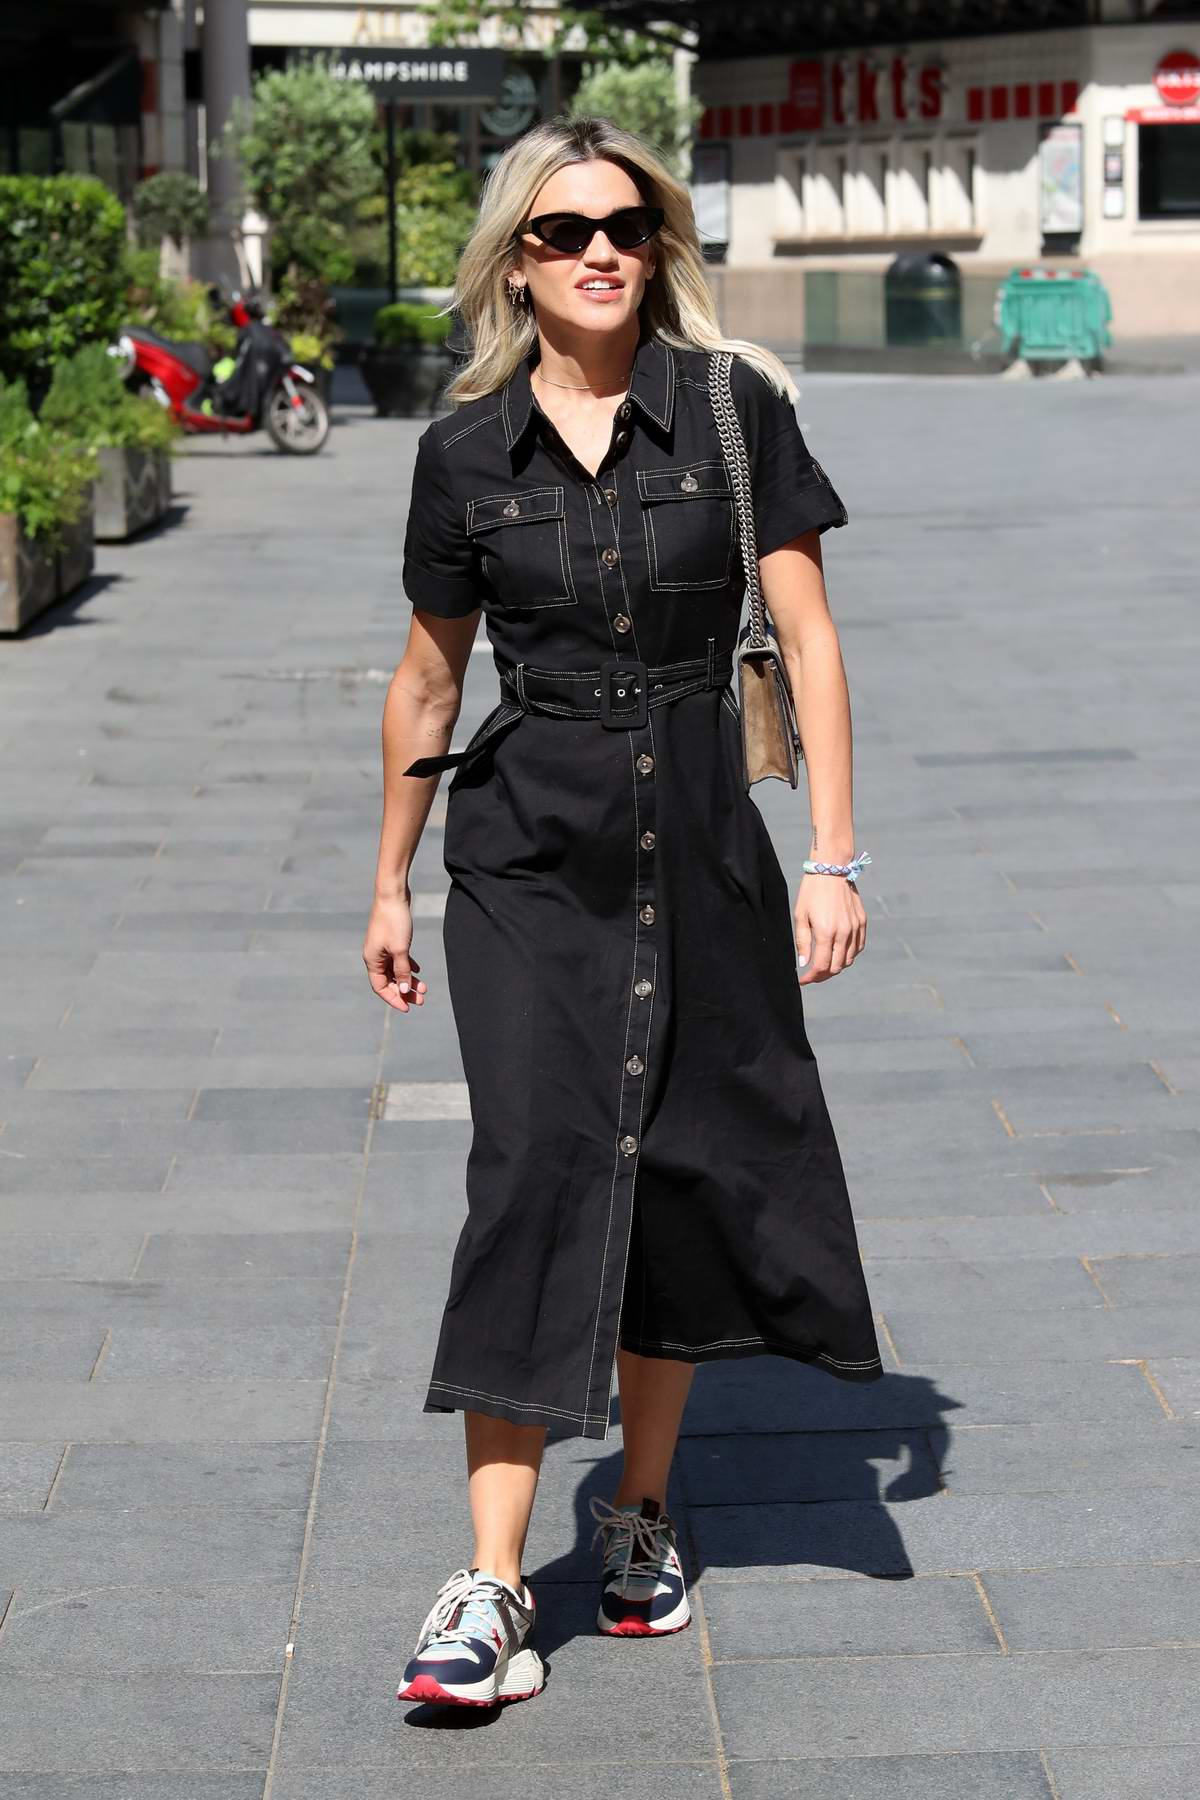 Ashley Roberts wears a black denim dress as she leaves Heart Radio in London, UK